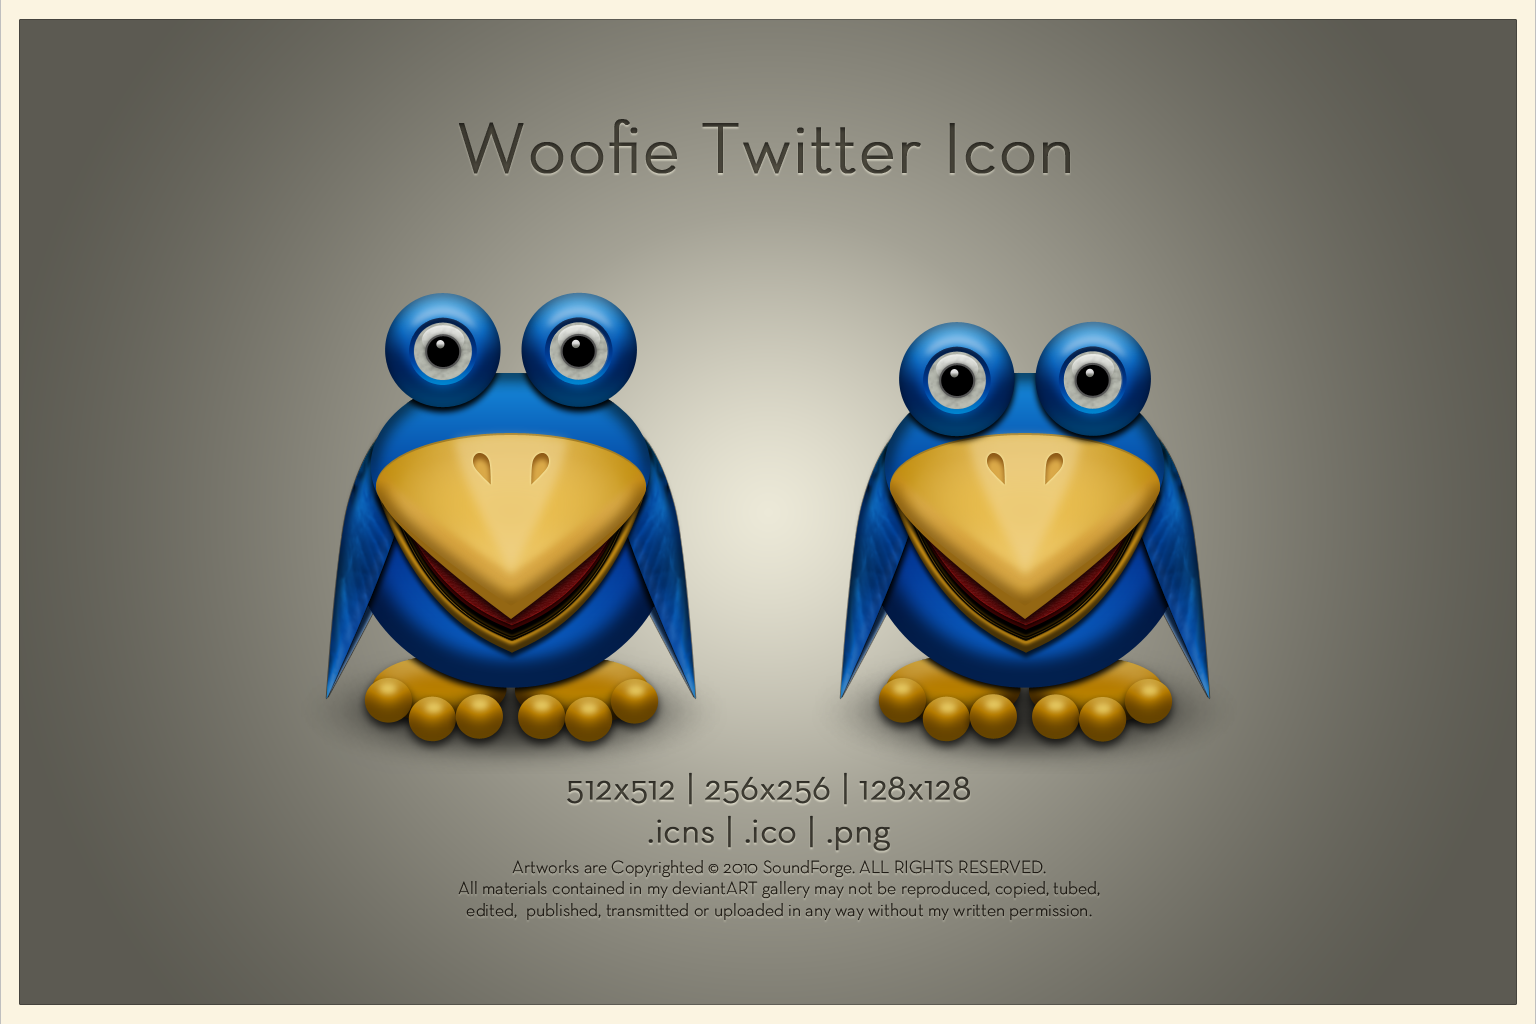 Woofie Twitter Icon by SoundForge